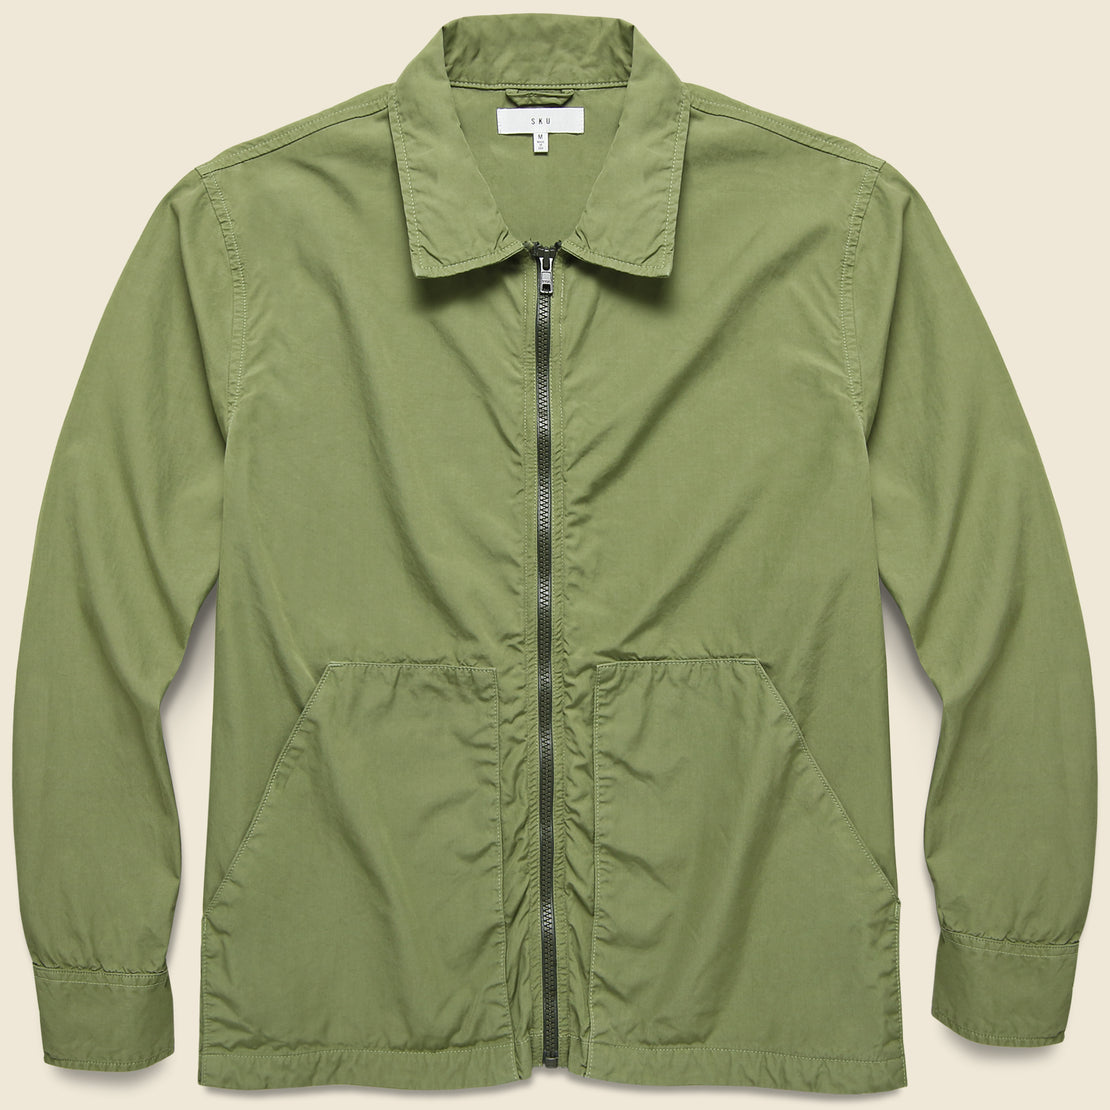 Save Khaki Poplin Service Jacket - Fatigue